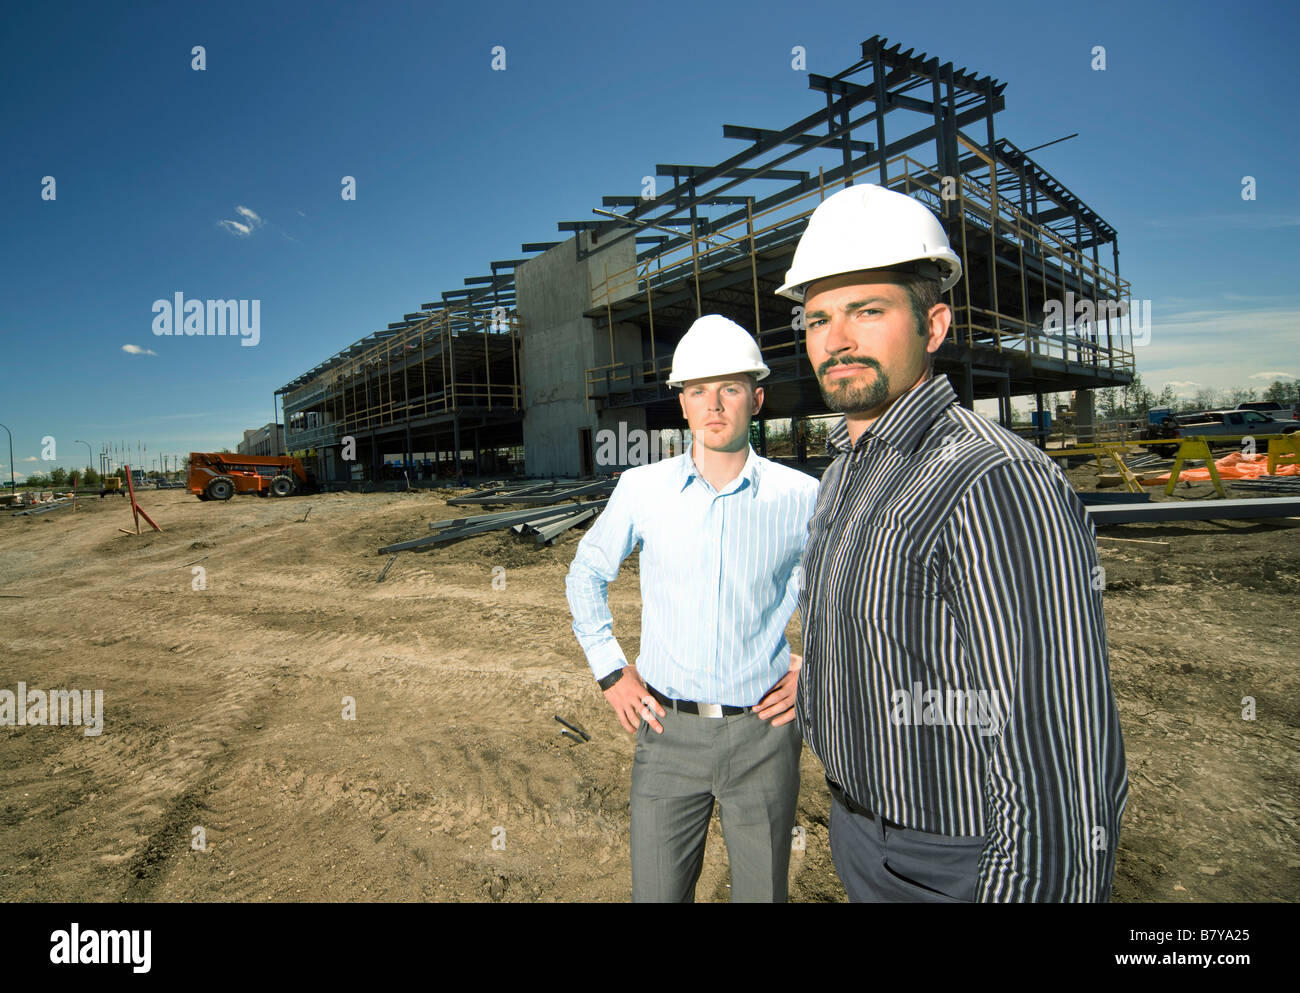 Men in hardhats at construction site - Stock Image